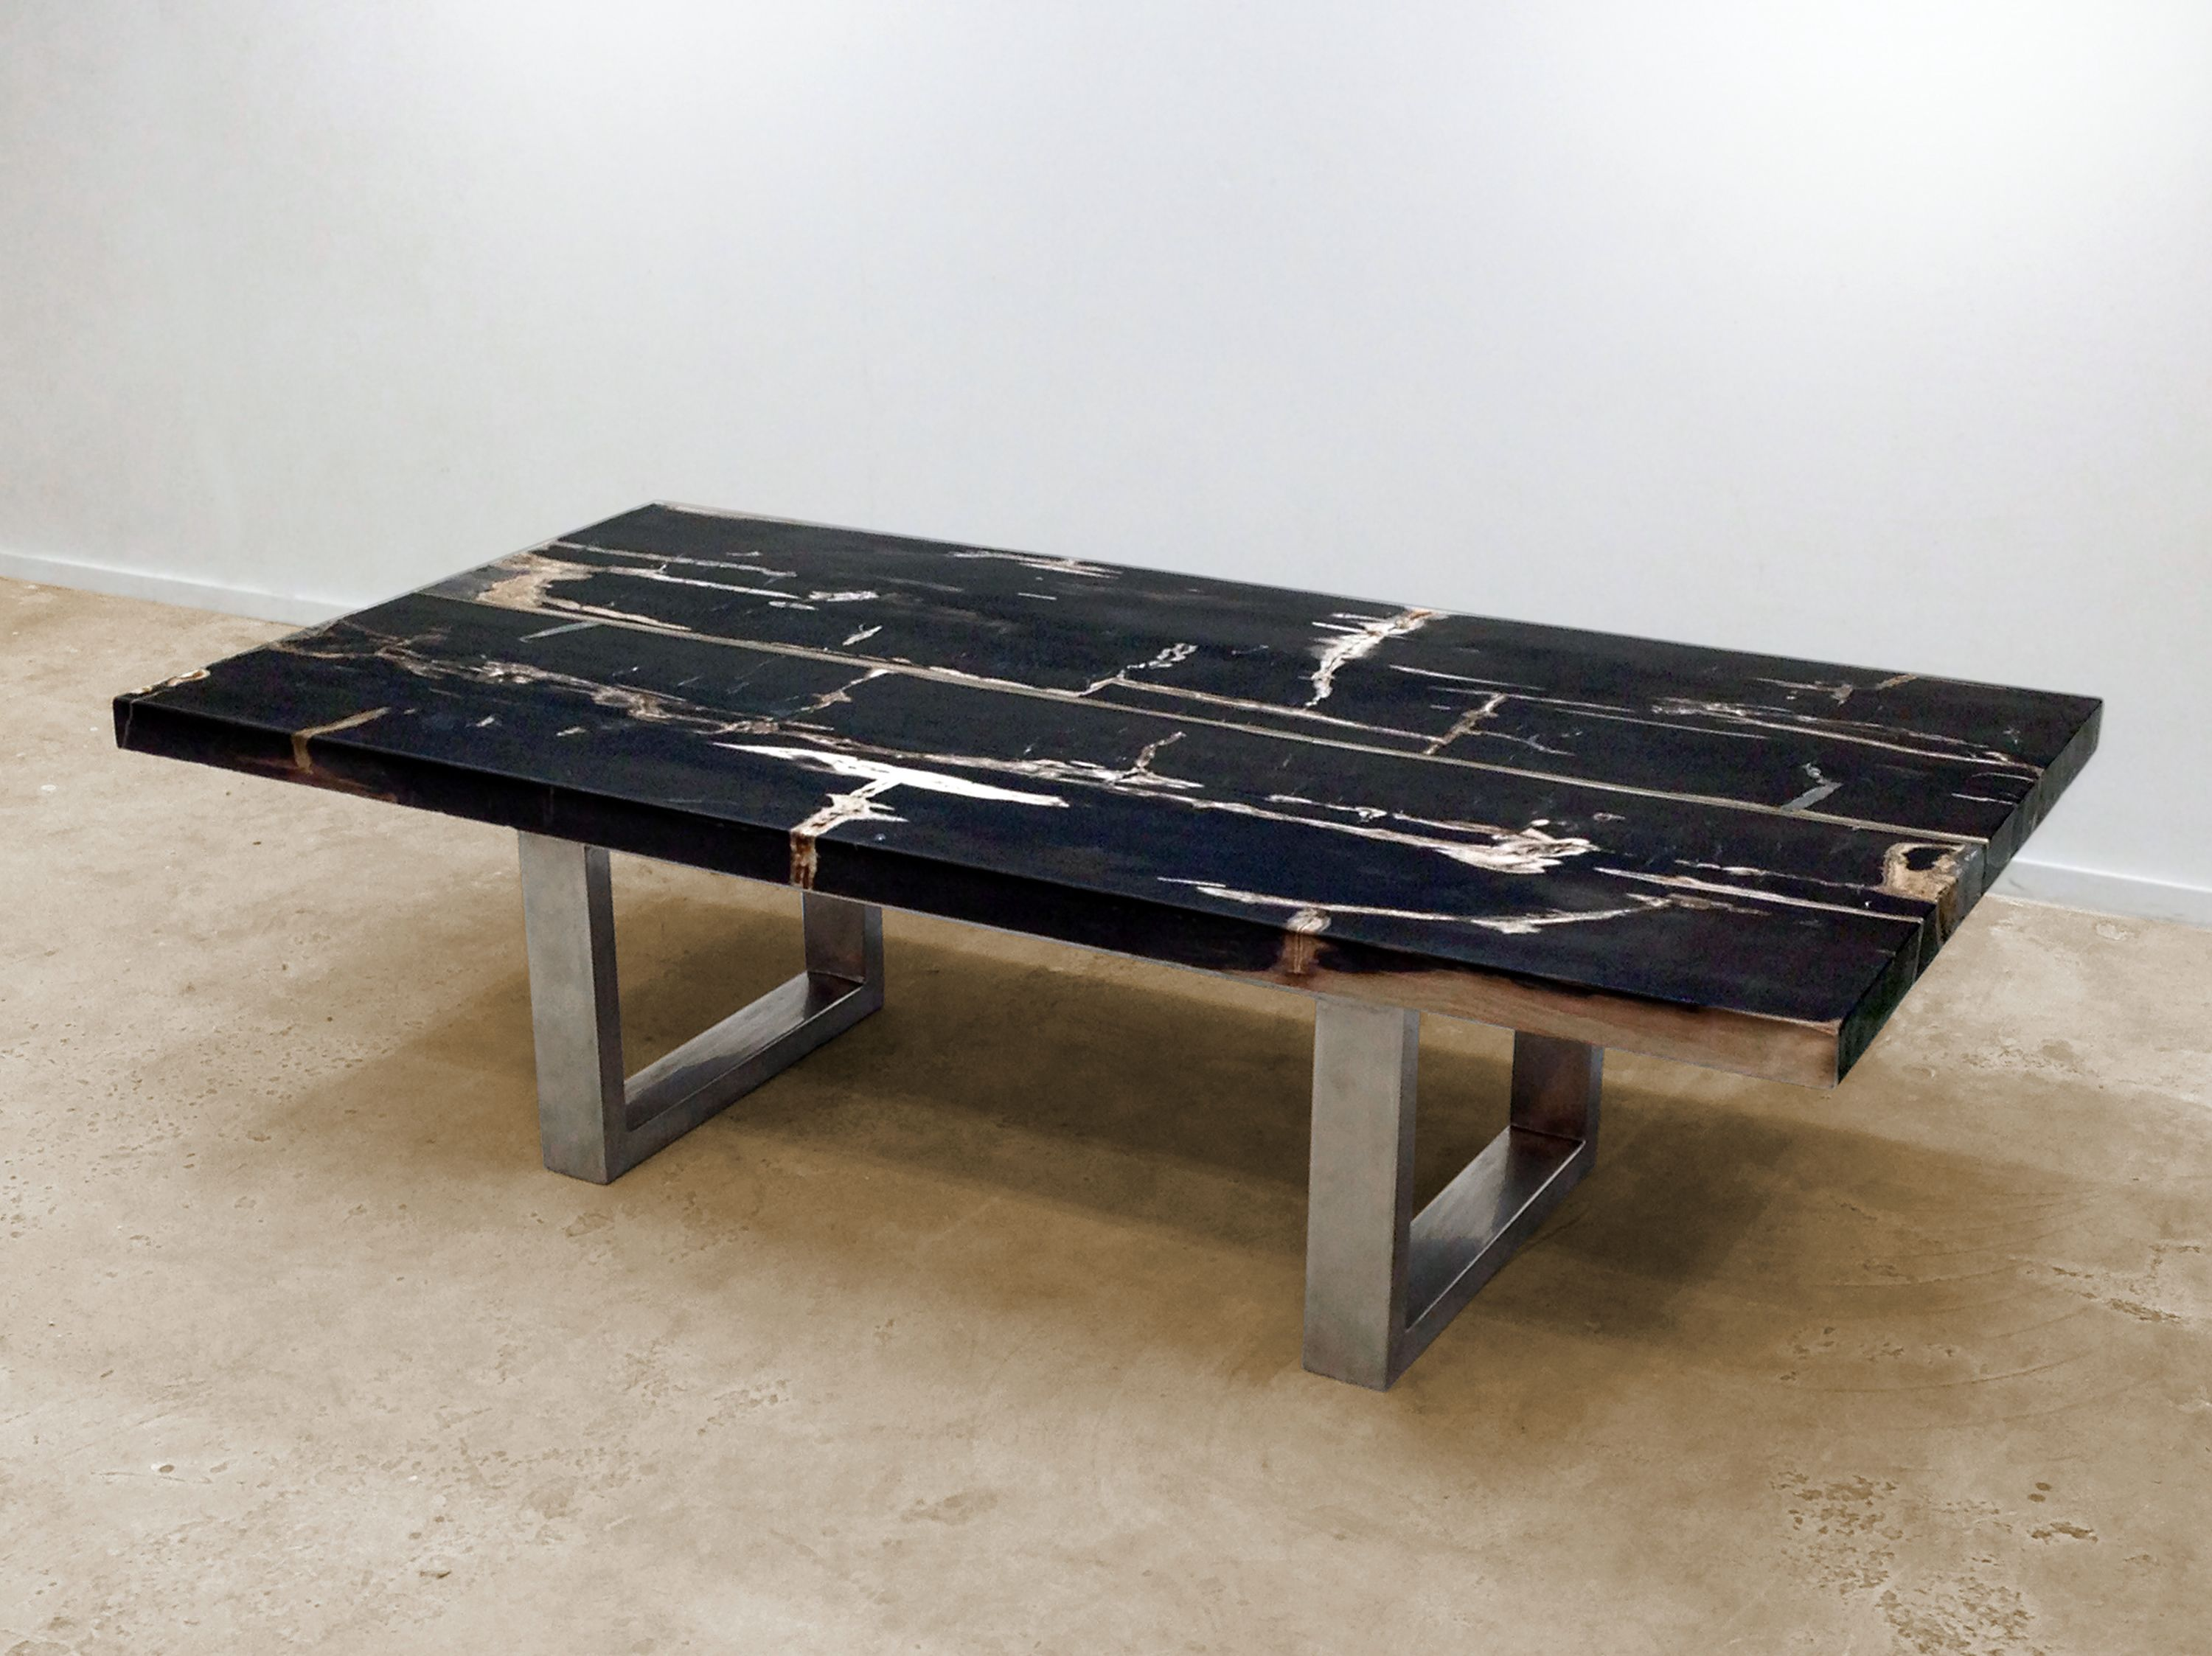 David Alan Collection Petrified wood coffee table with stainless